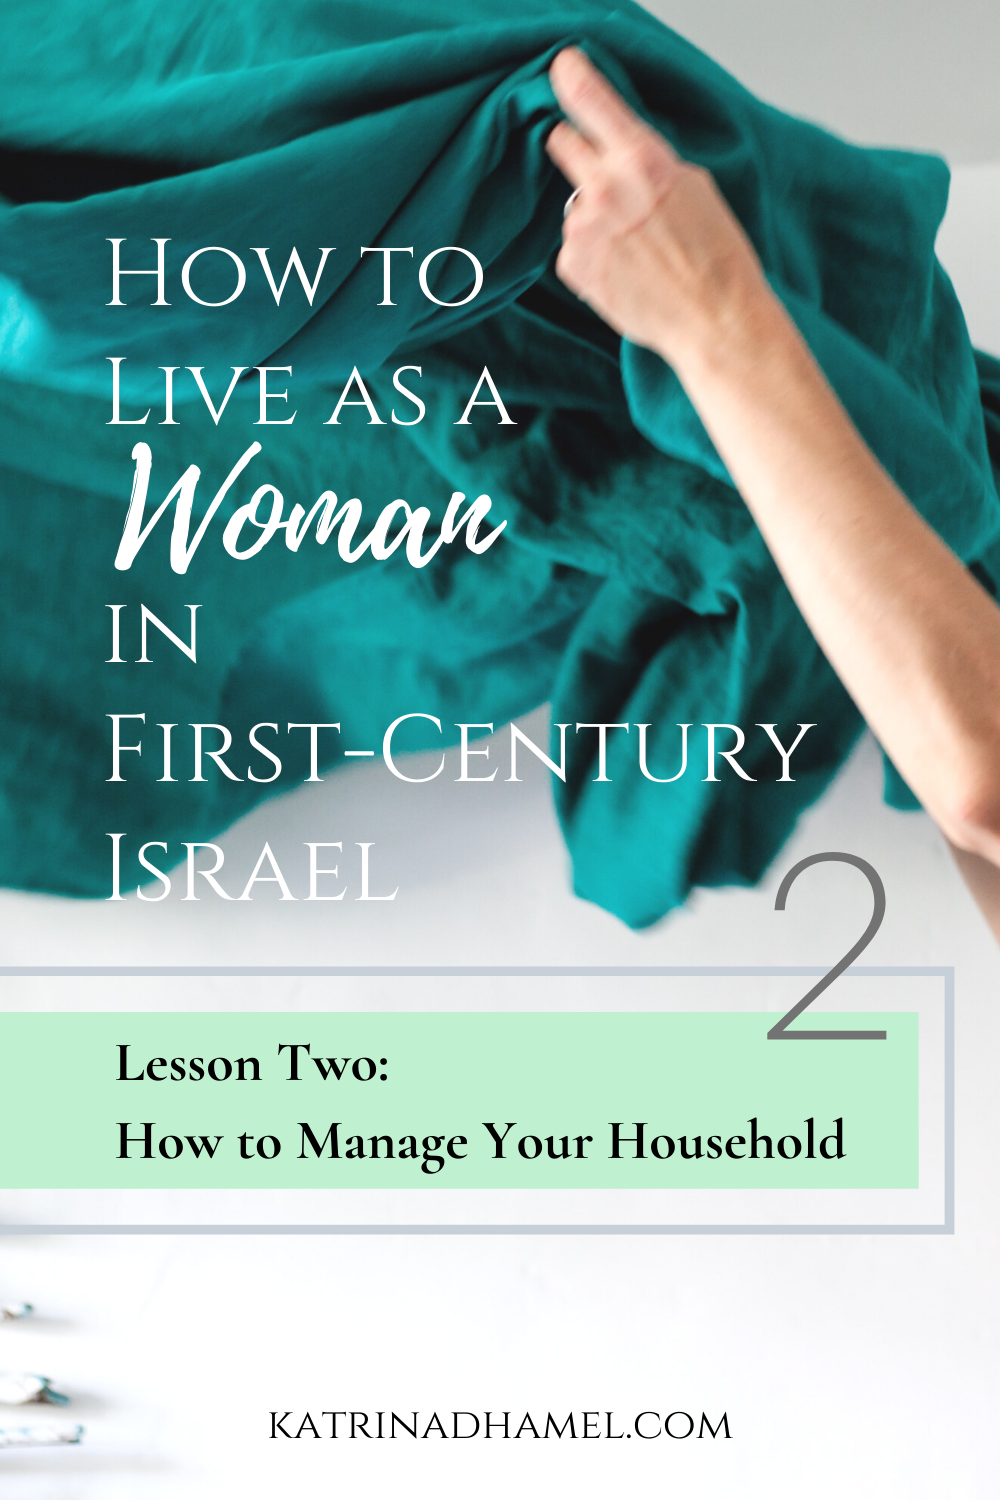 An arm tossing a teal cloth in the air and the text 'How to Live as a Woman in first-century Israel, Lesson Two: How to Manage Your Household'